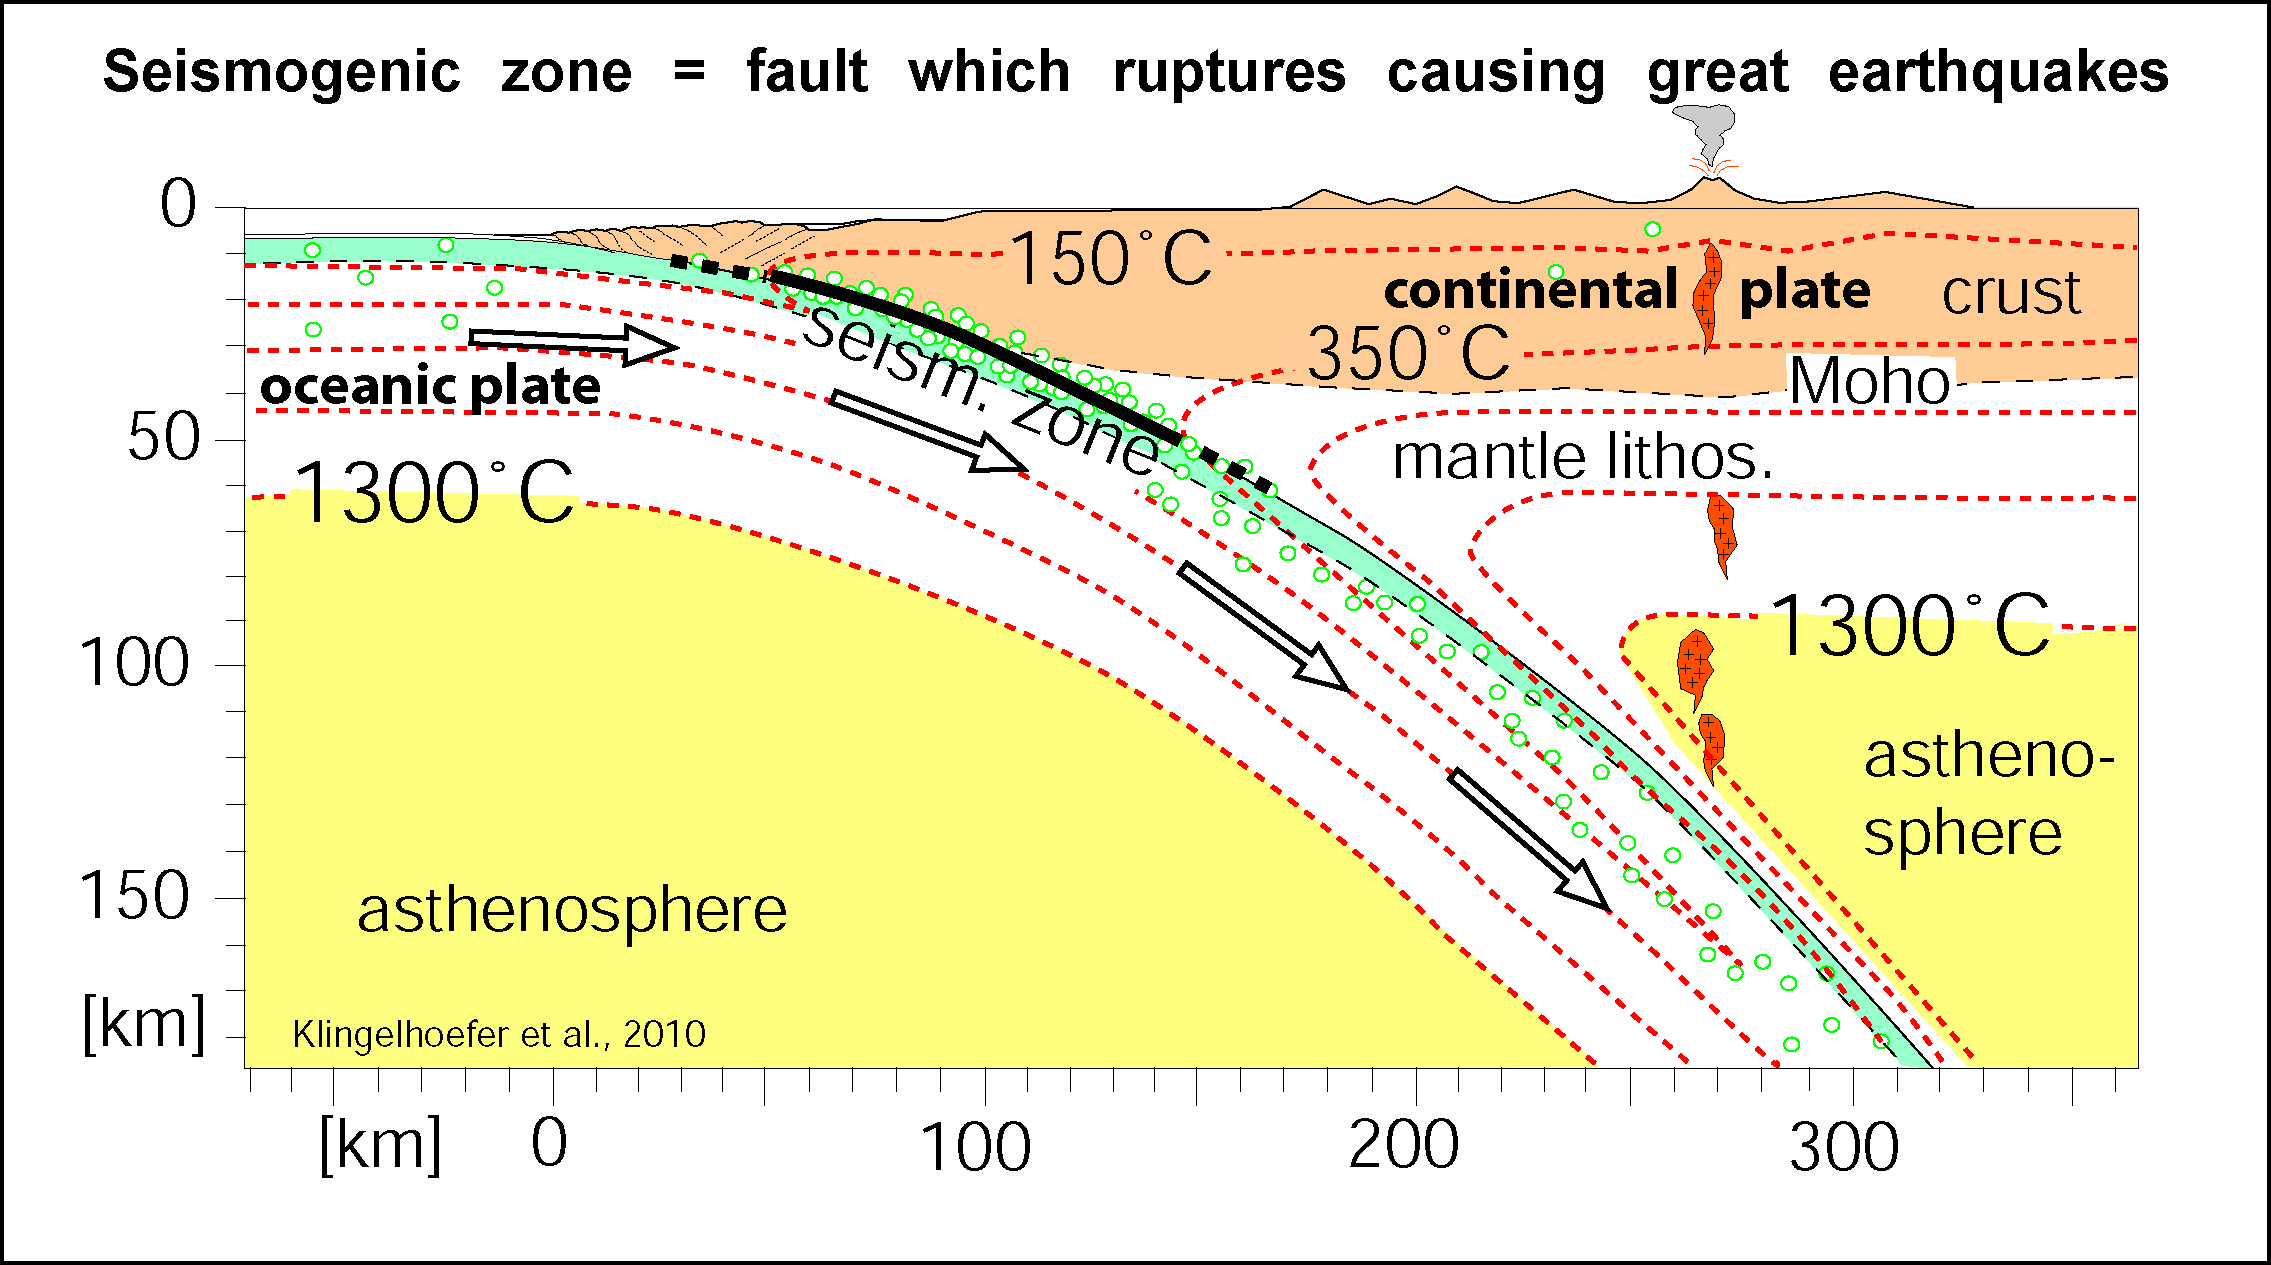 tsunami diagram with labels intermediate switch wiring australia earthquake subduction divergent boundary